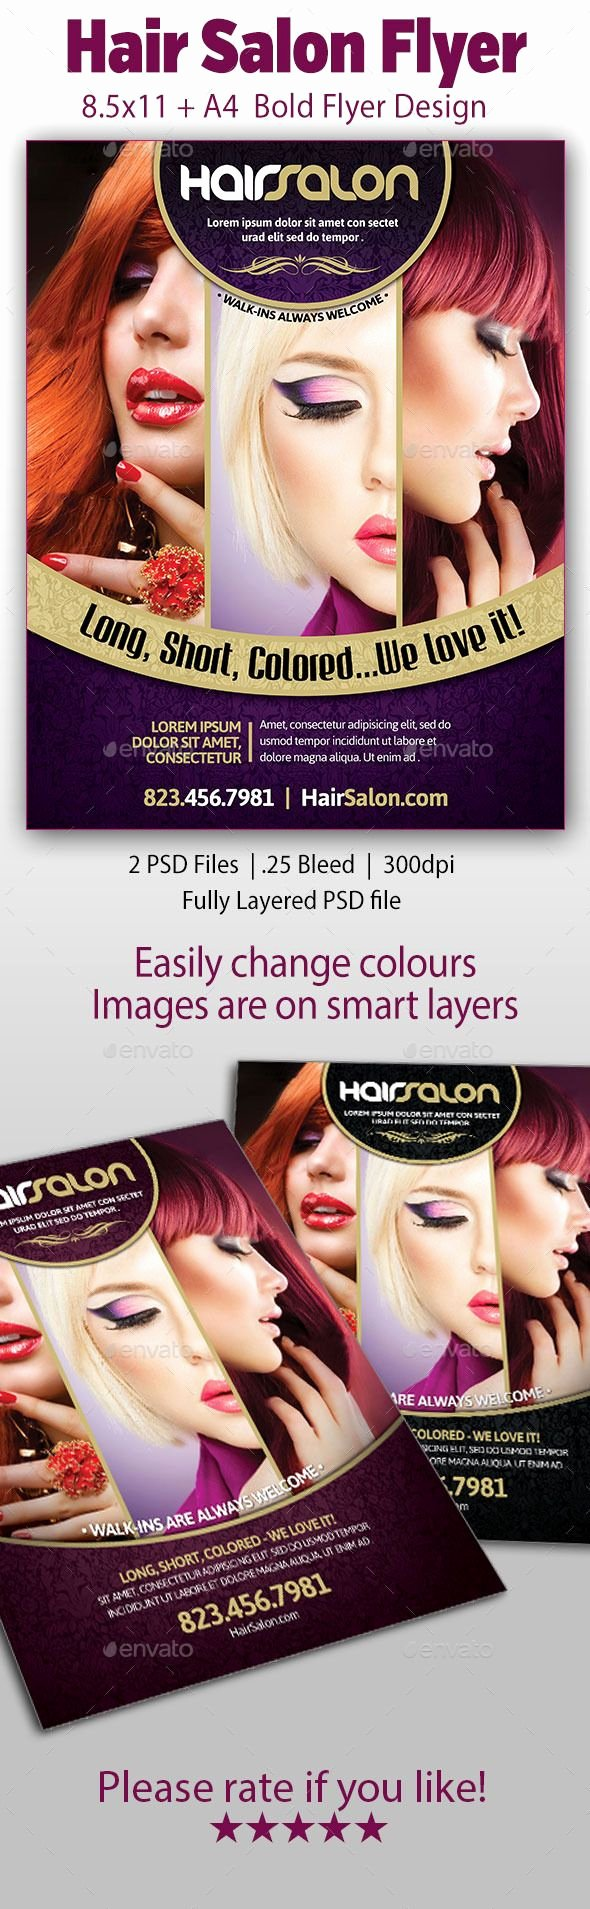 Hair Salon Flyer Templates Free Unique Hair Salon Flyer